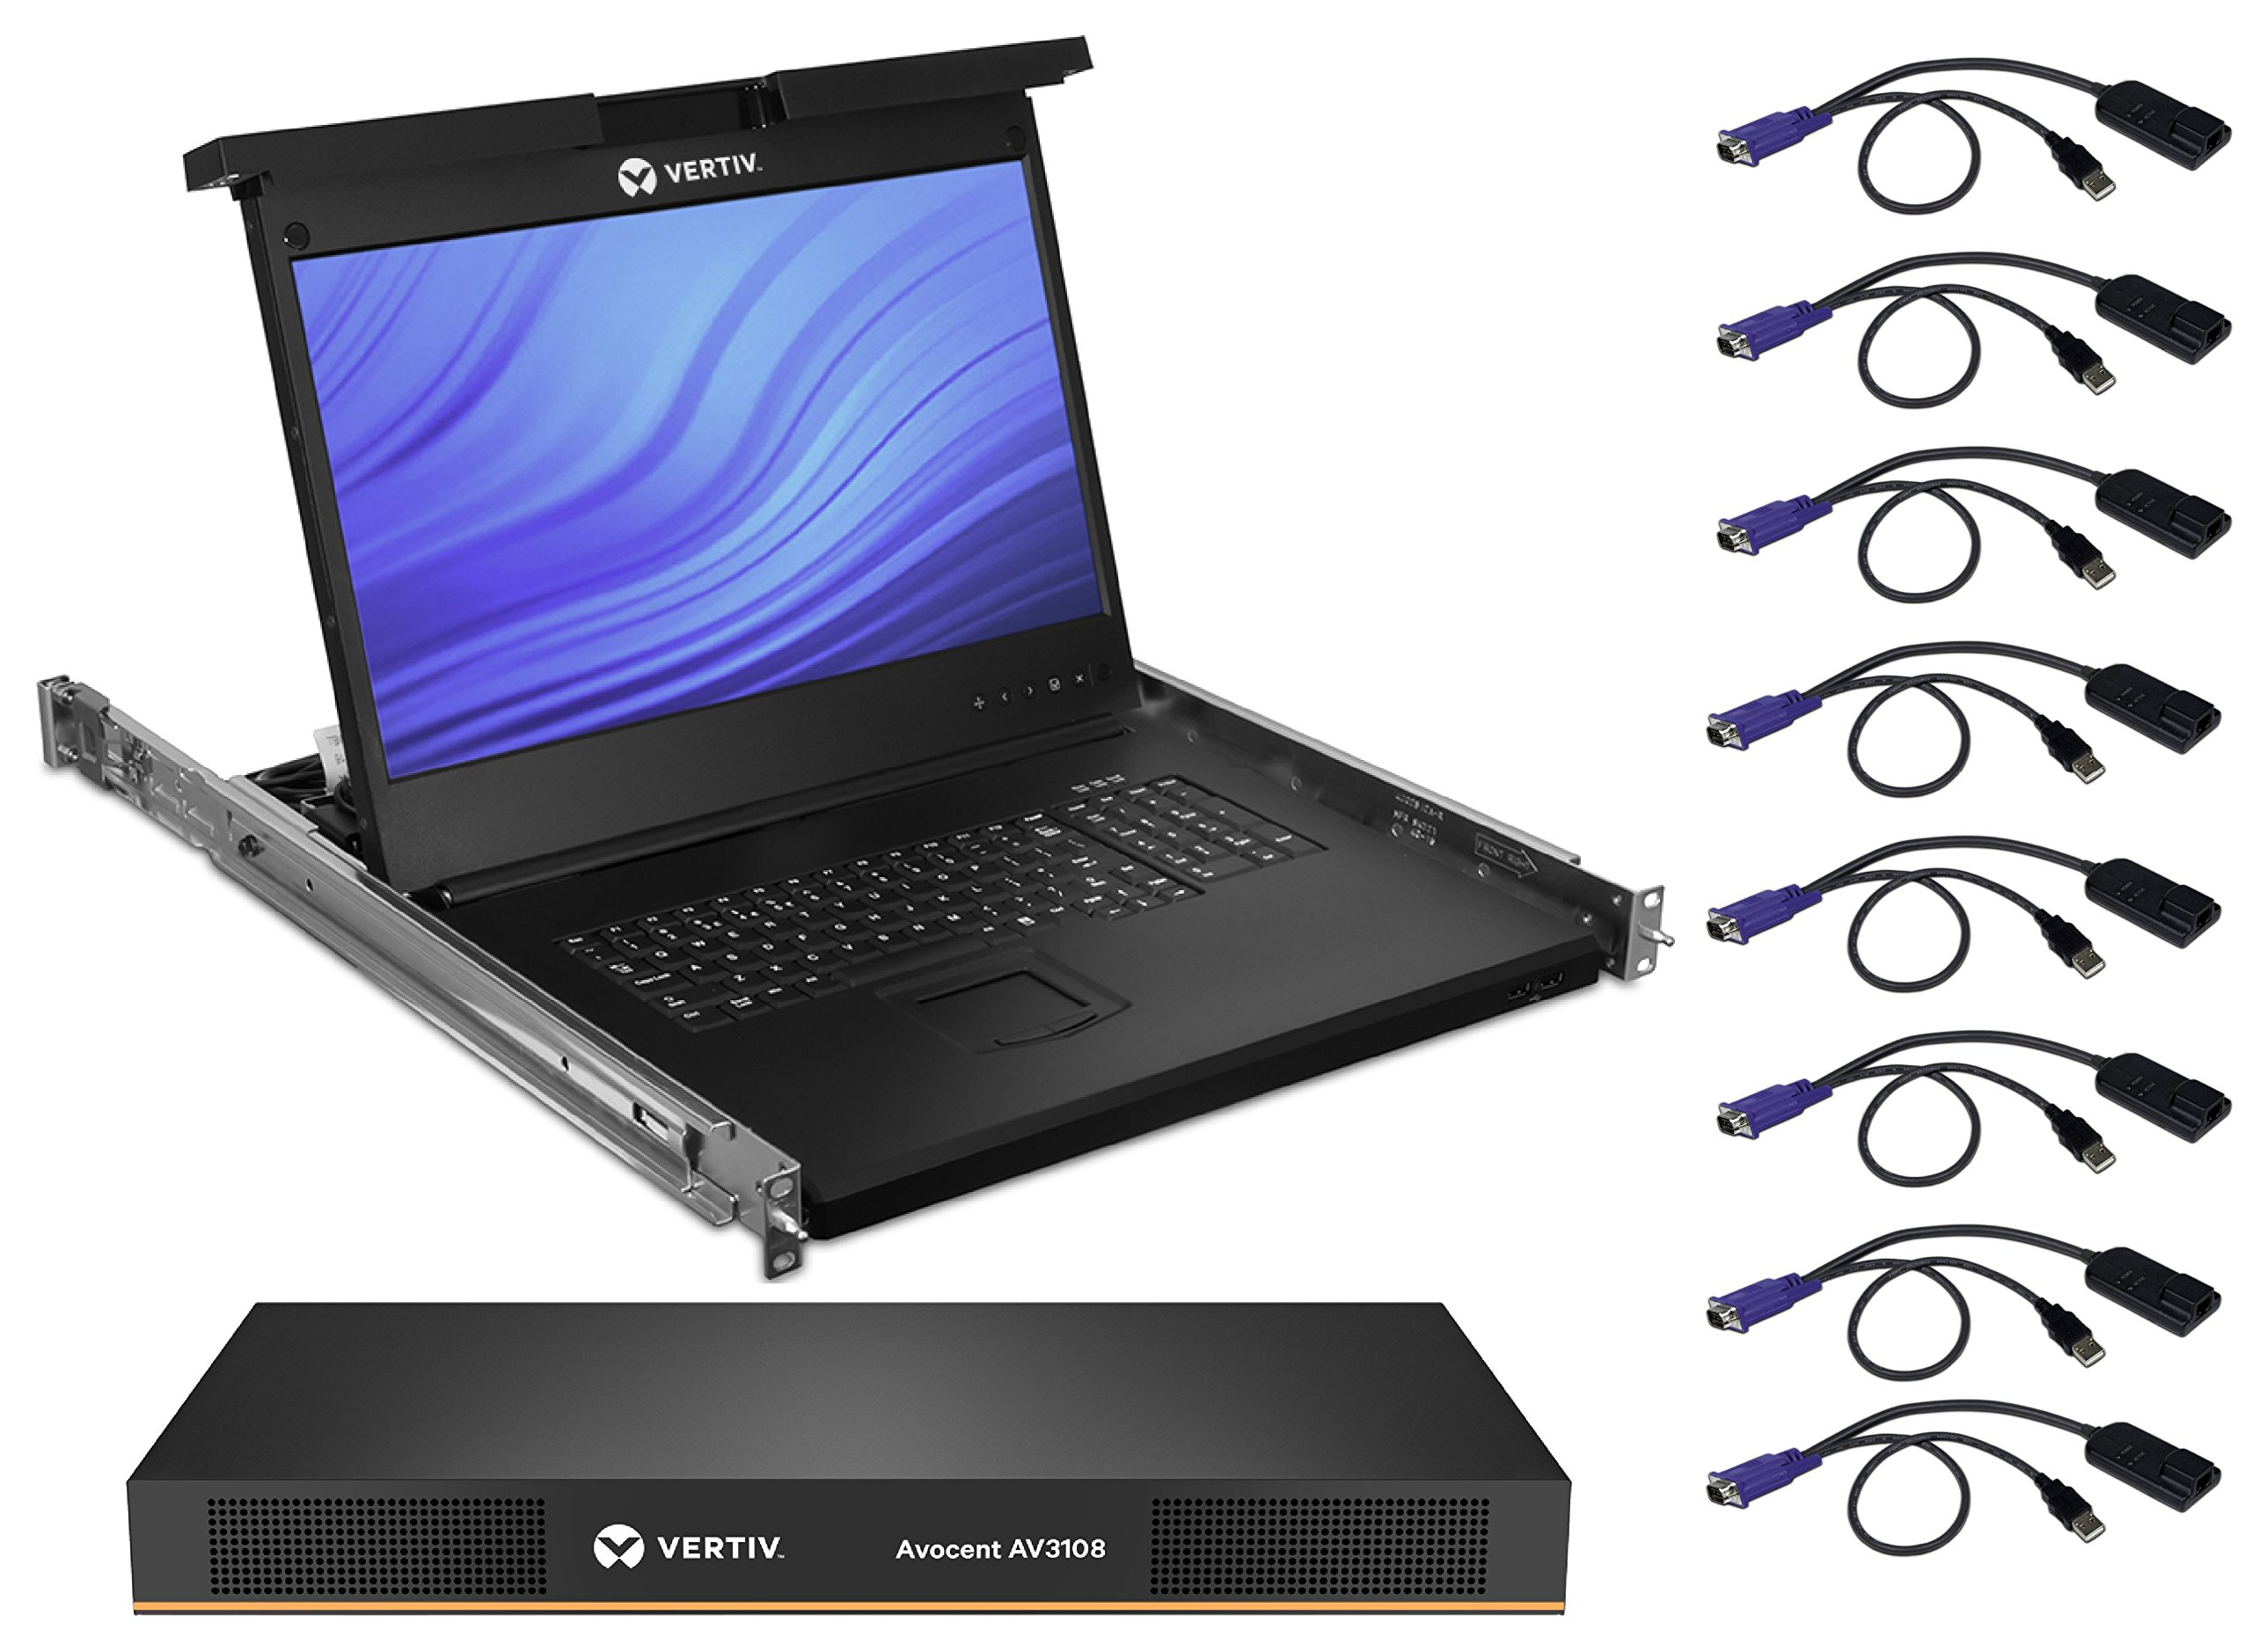 Avocent Rack Console 19'' LCD Widescreen with 8-Port Digital KVM Over IP Switch & Cables (LRA185KMM8D-001)